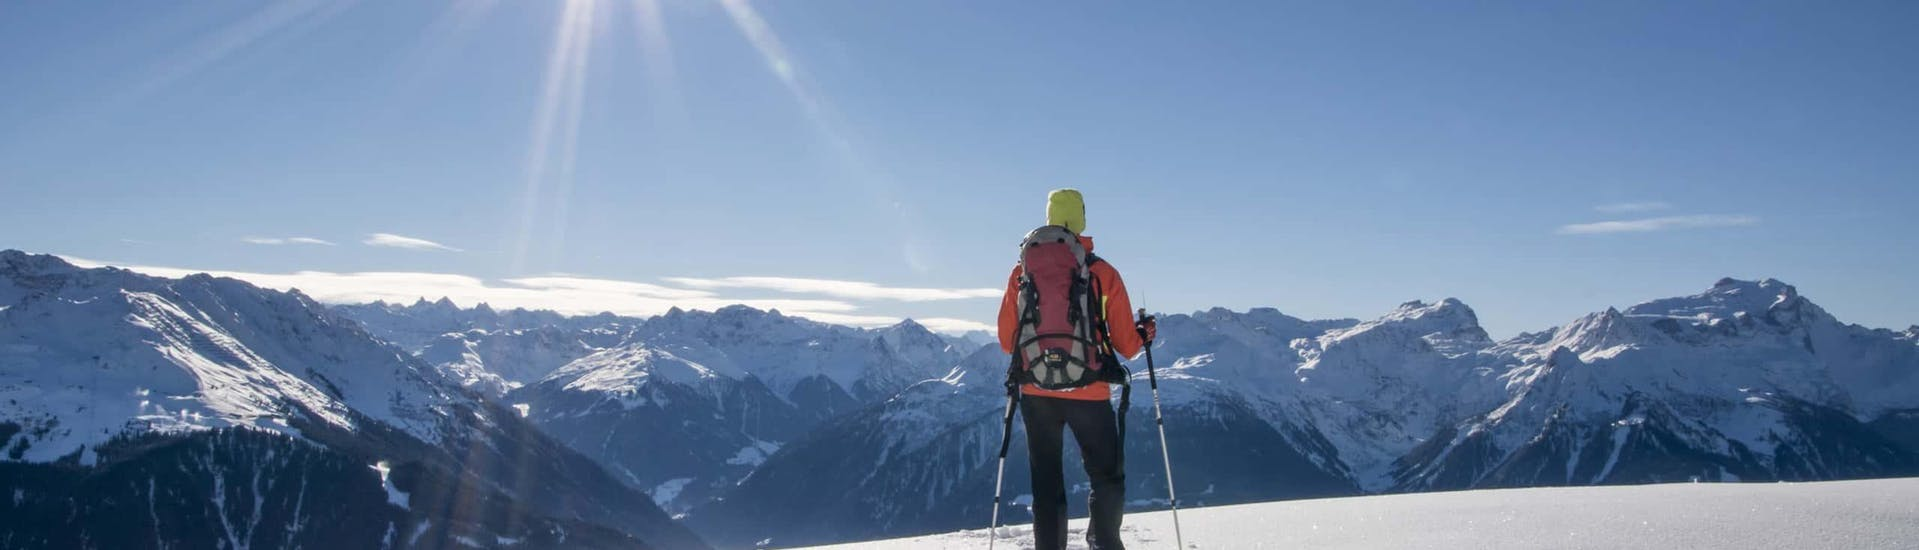 A hiker is overlooking the mountainous panorama while on one of the Private Snowshoeing Tours with Markus - All Levels organised by Markus Kneisl.